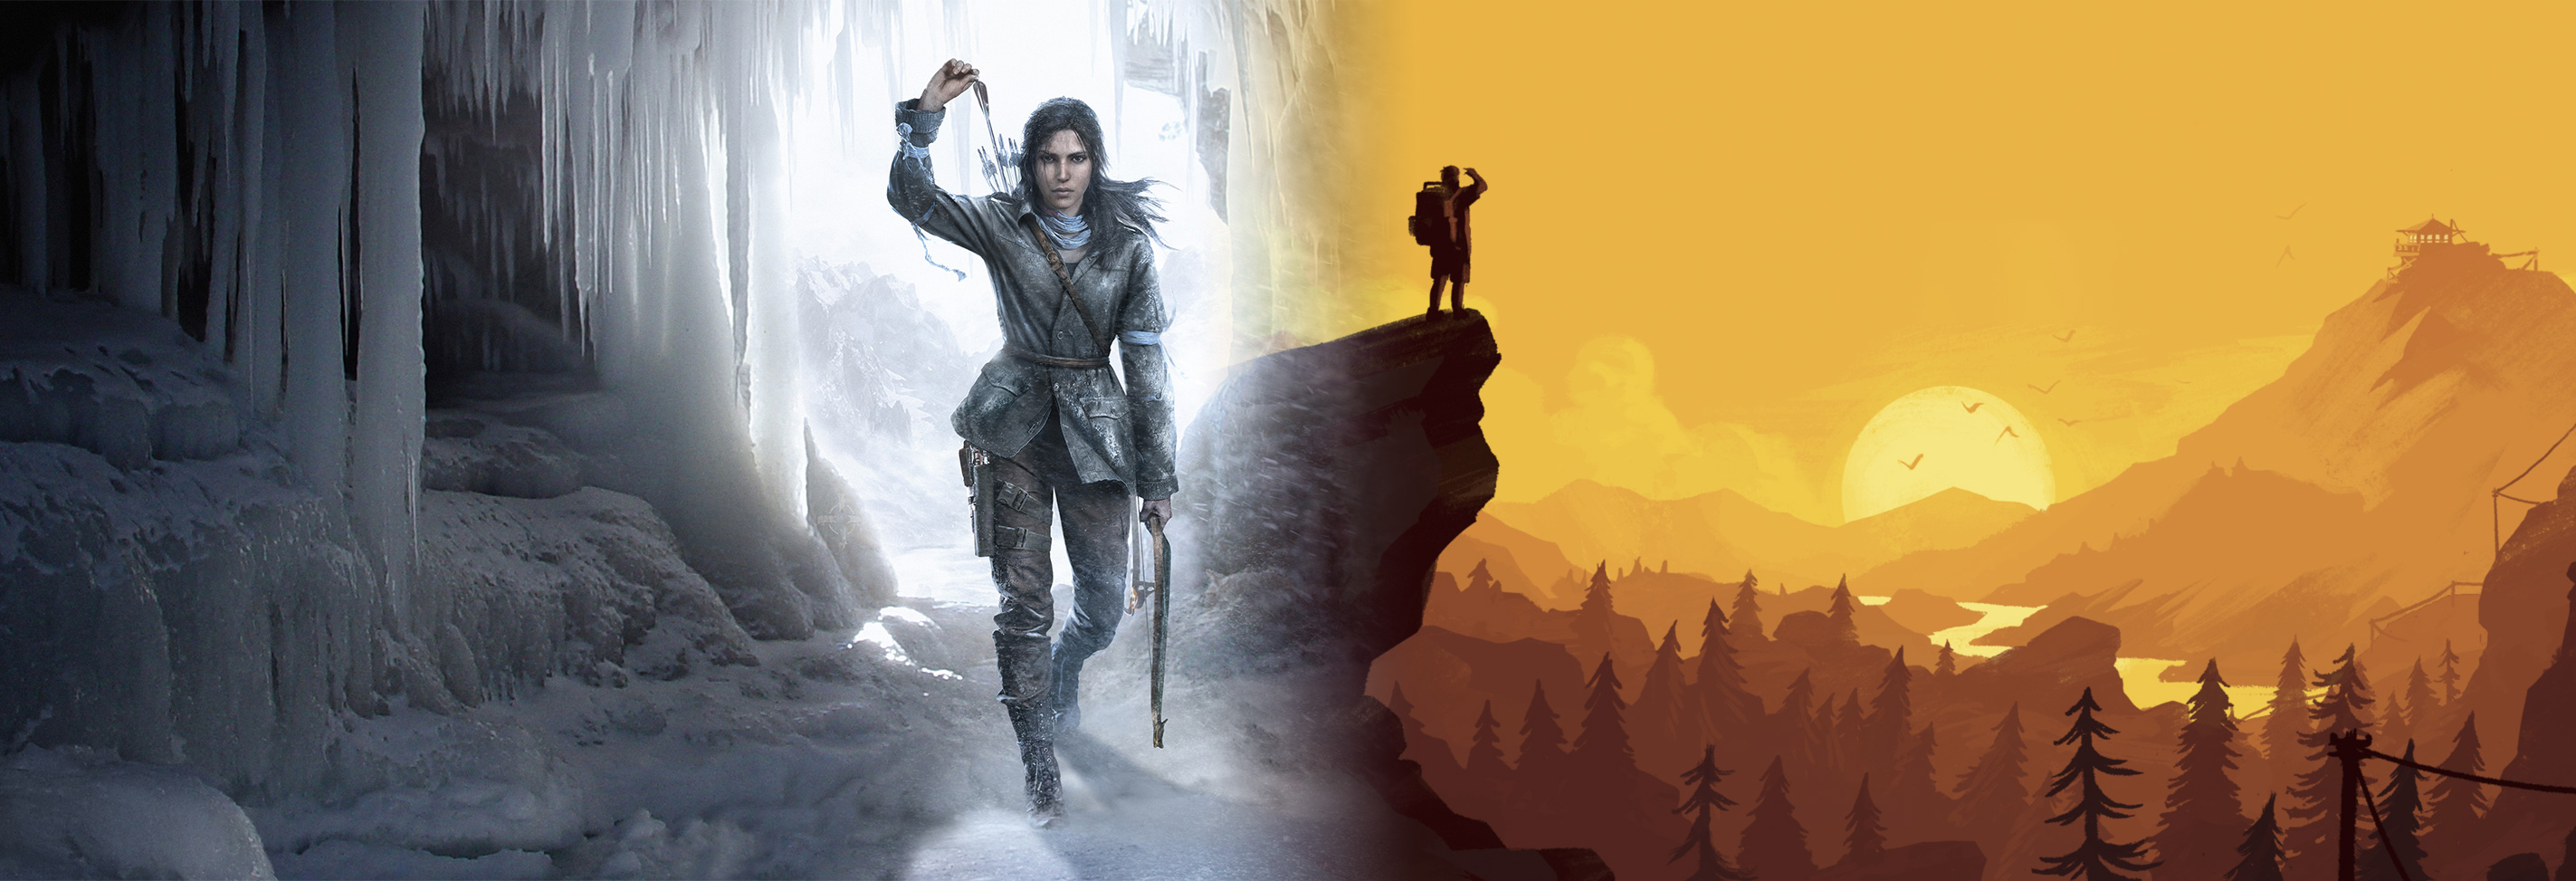 Rise of the Tomb Raider and Firewatch banner